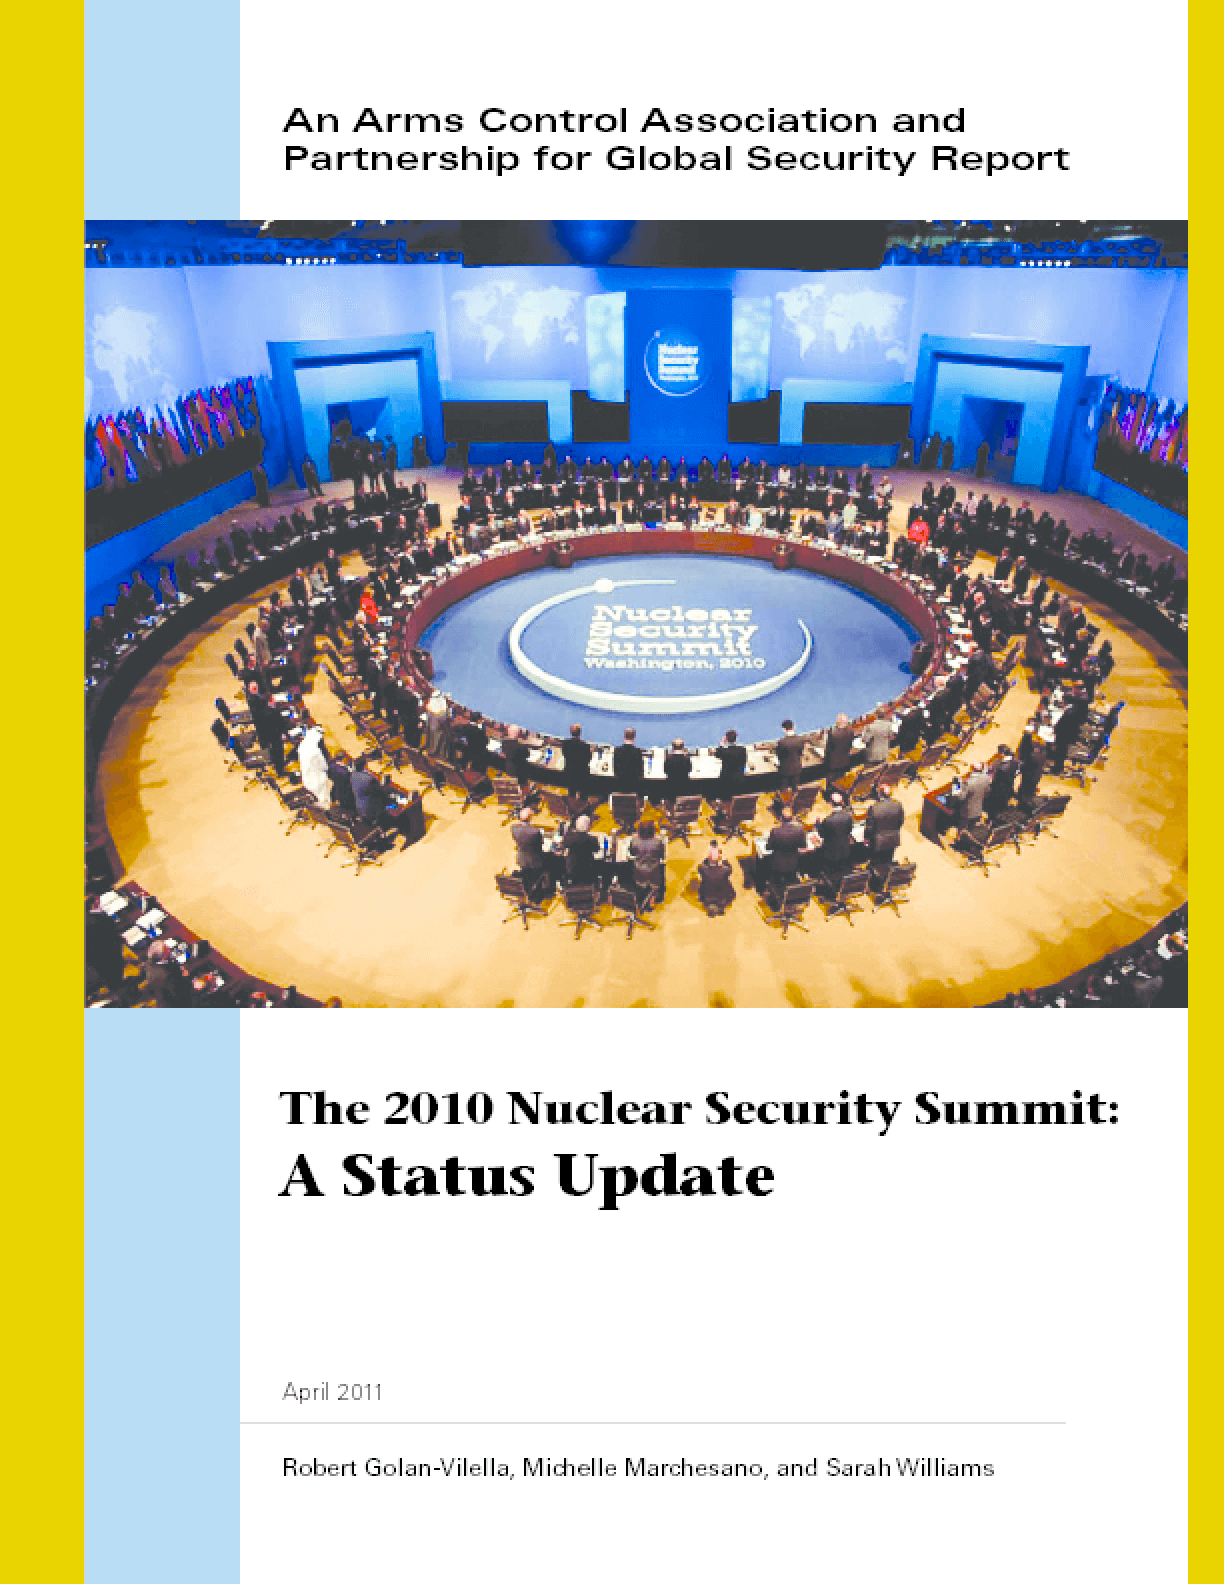 The 2010 Nuclear Security Summit: A Status Update